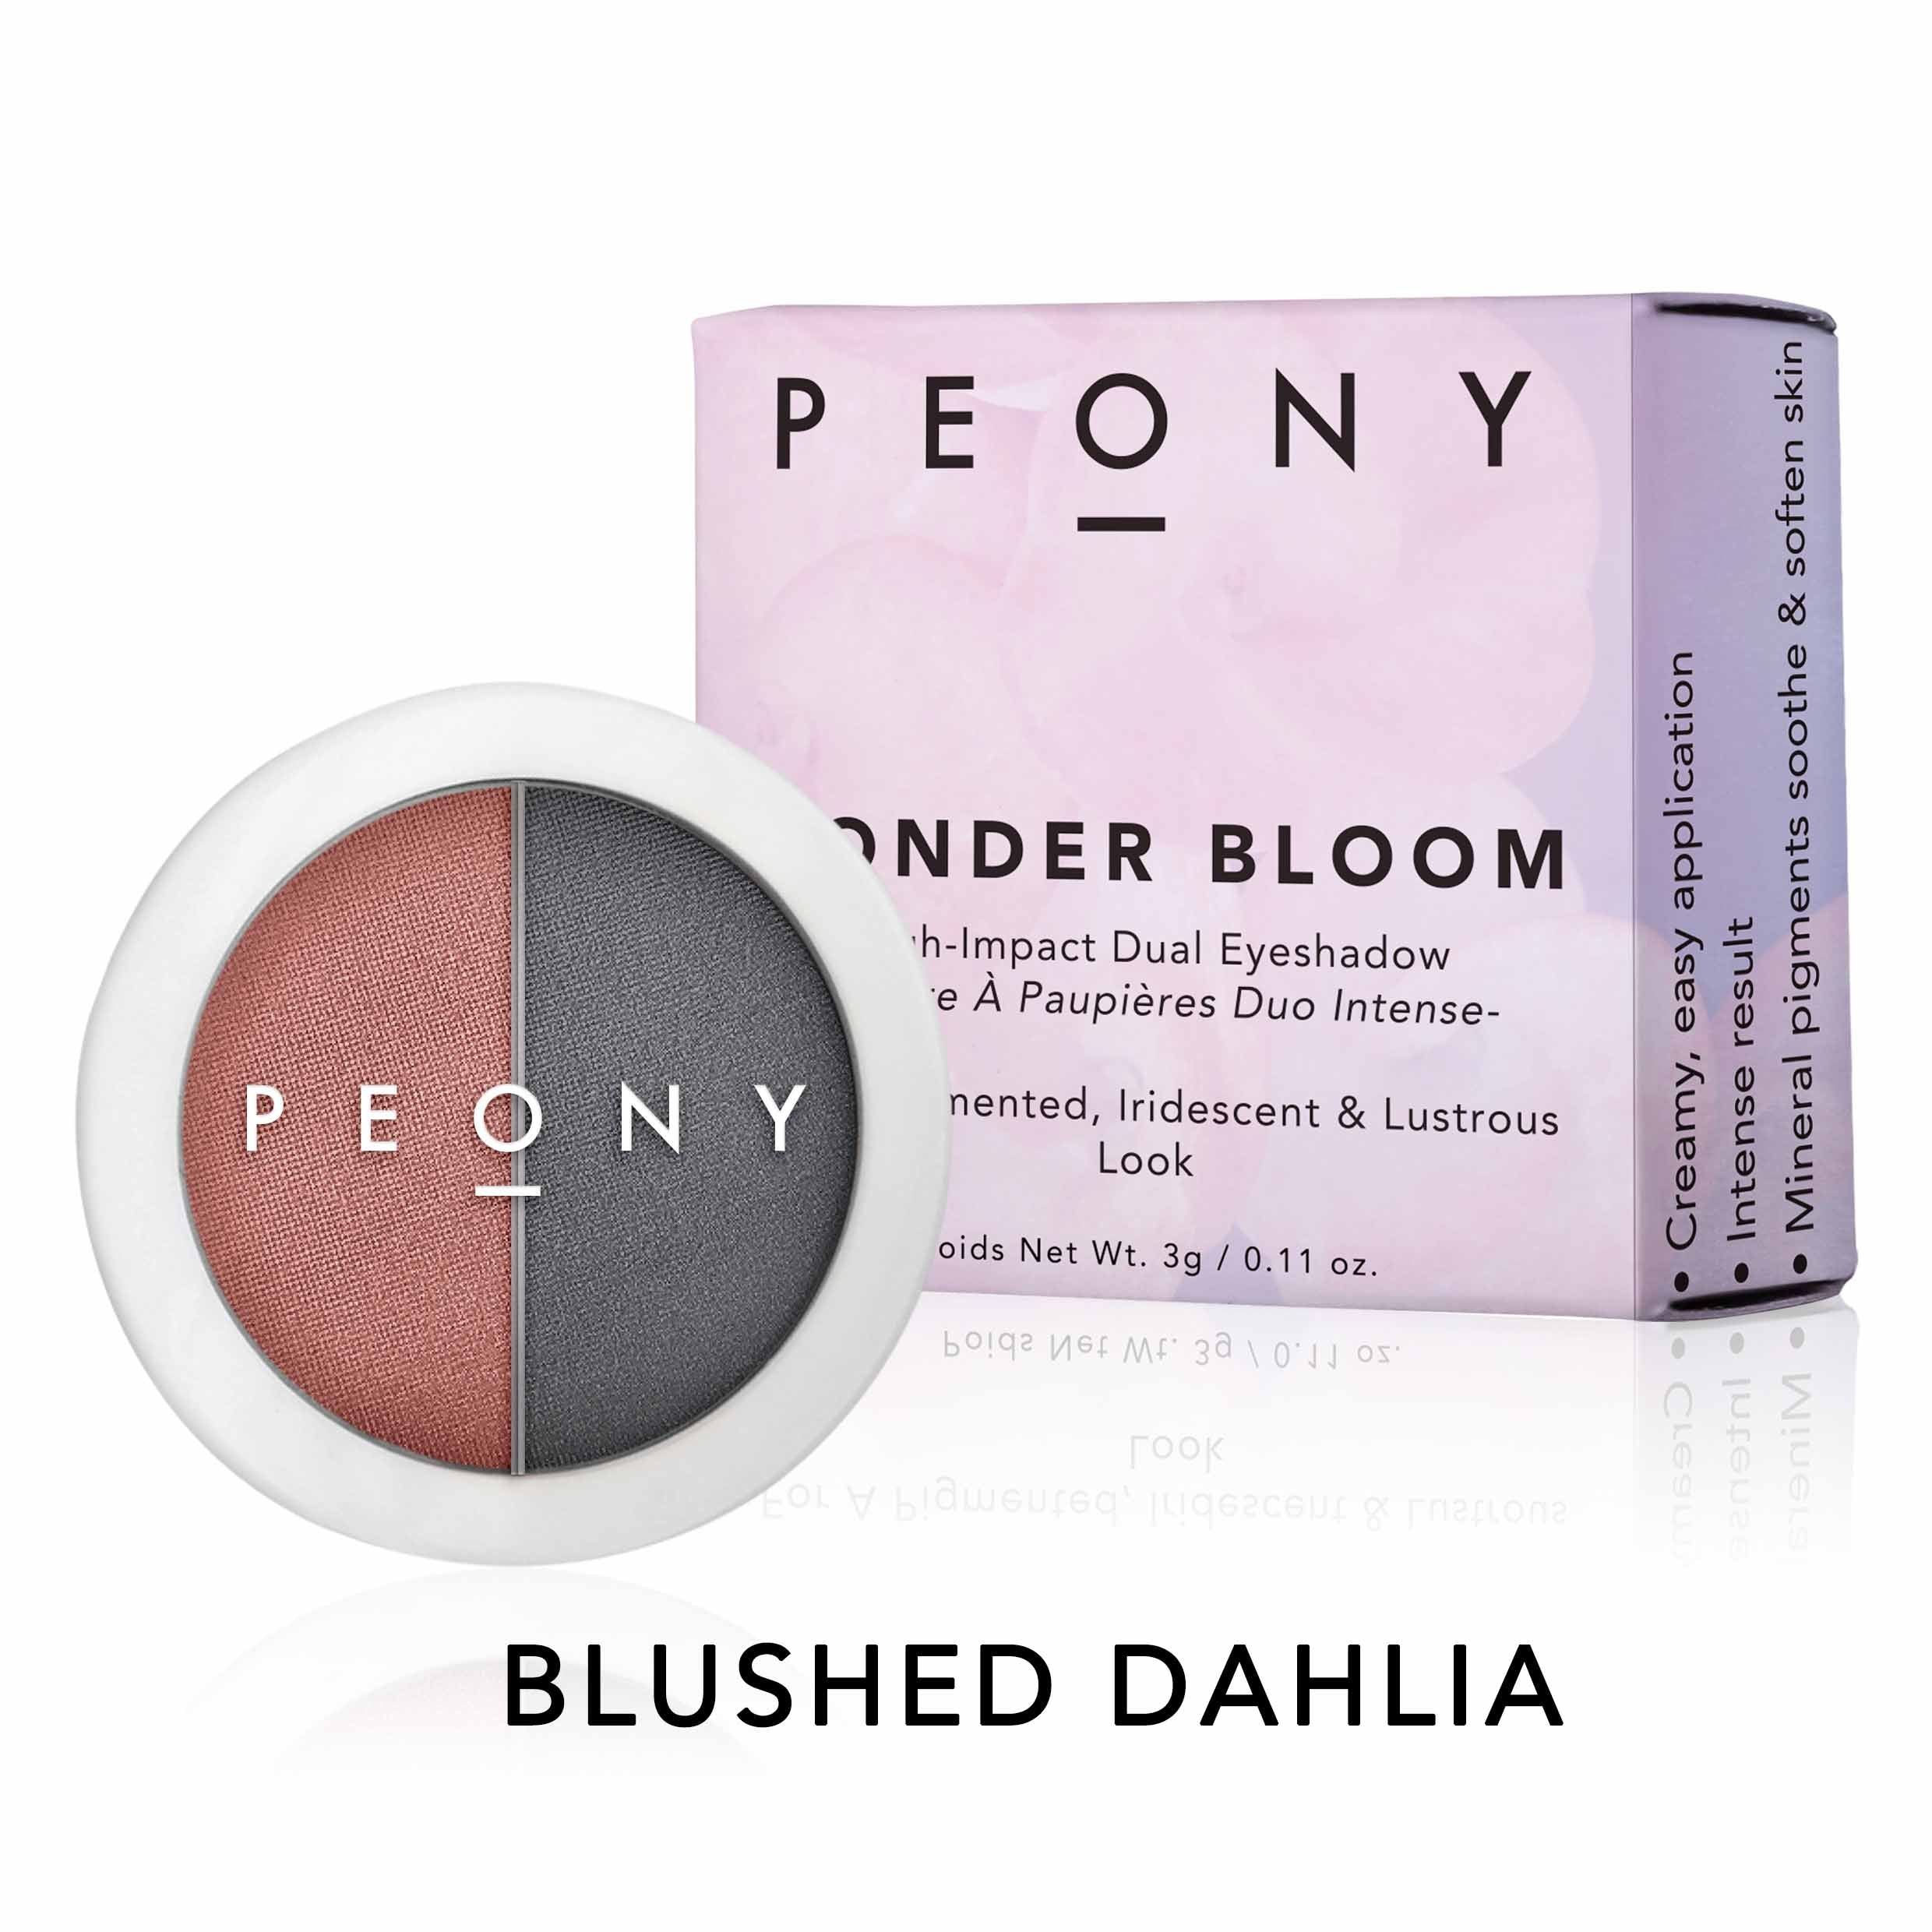 Wonder Bloom - High-Impact Dual Eyeshadow